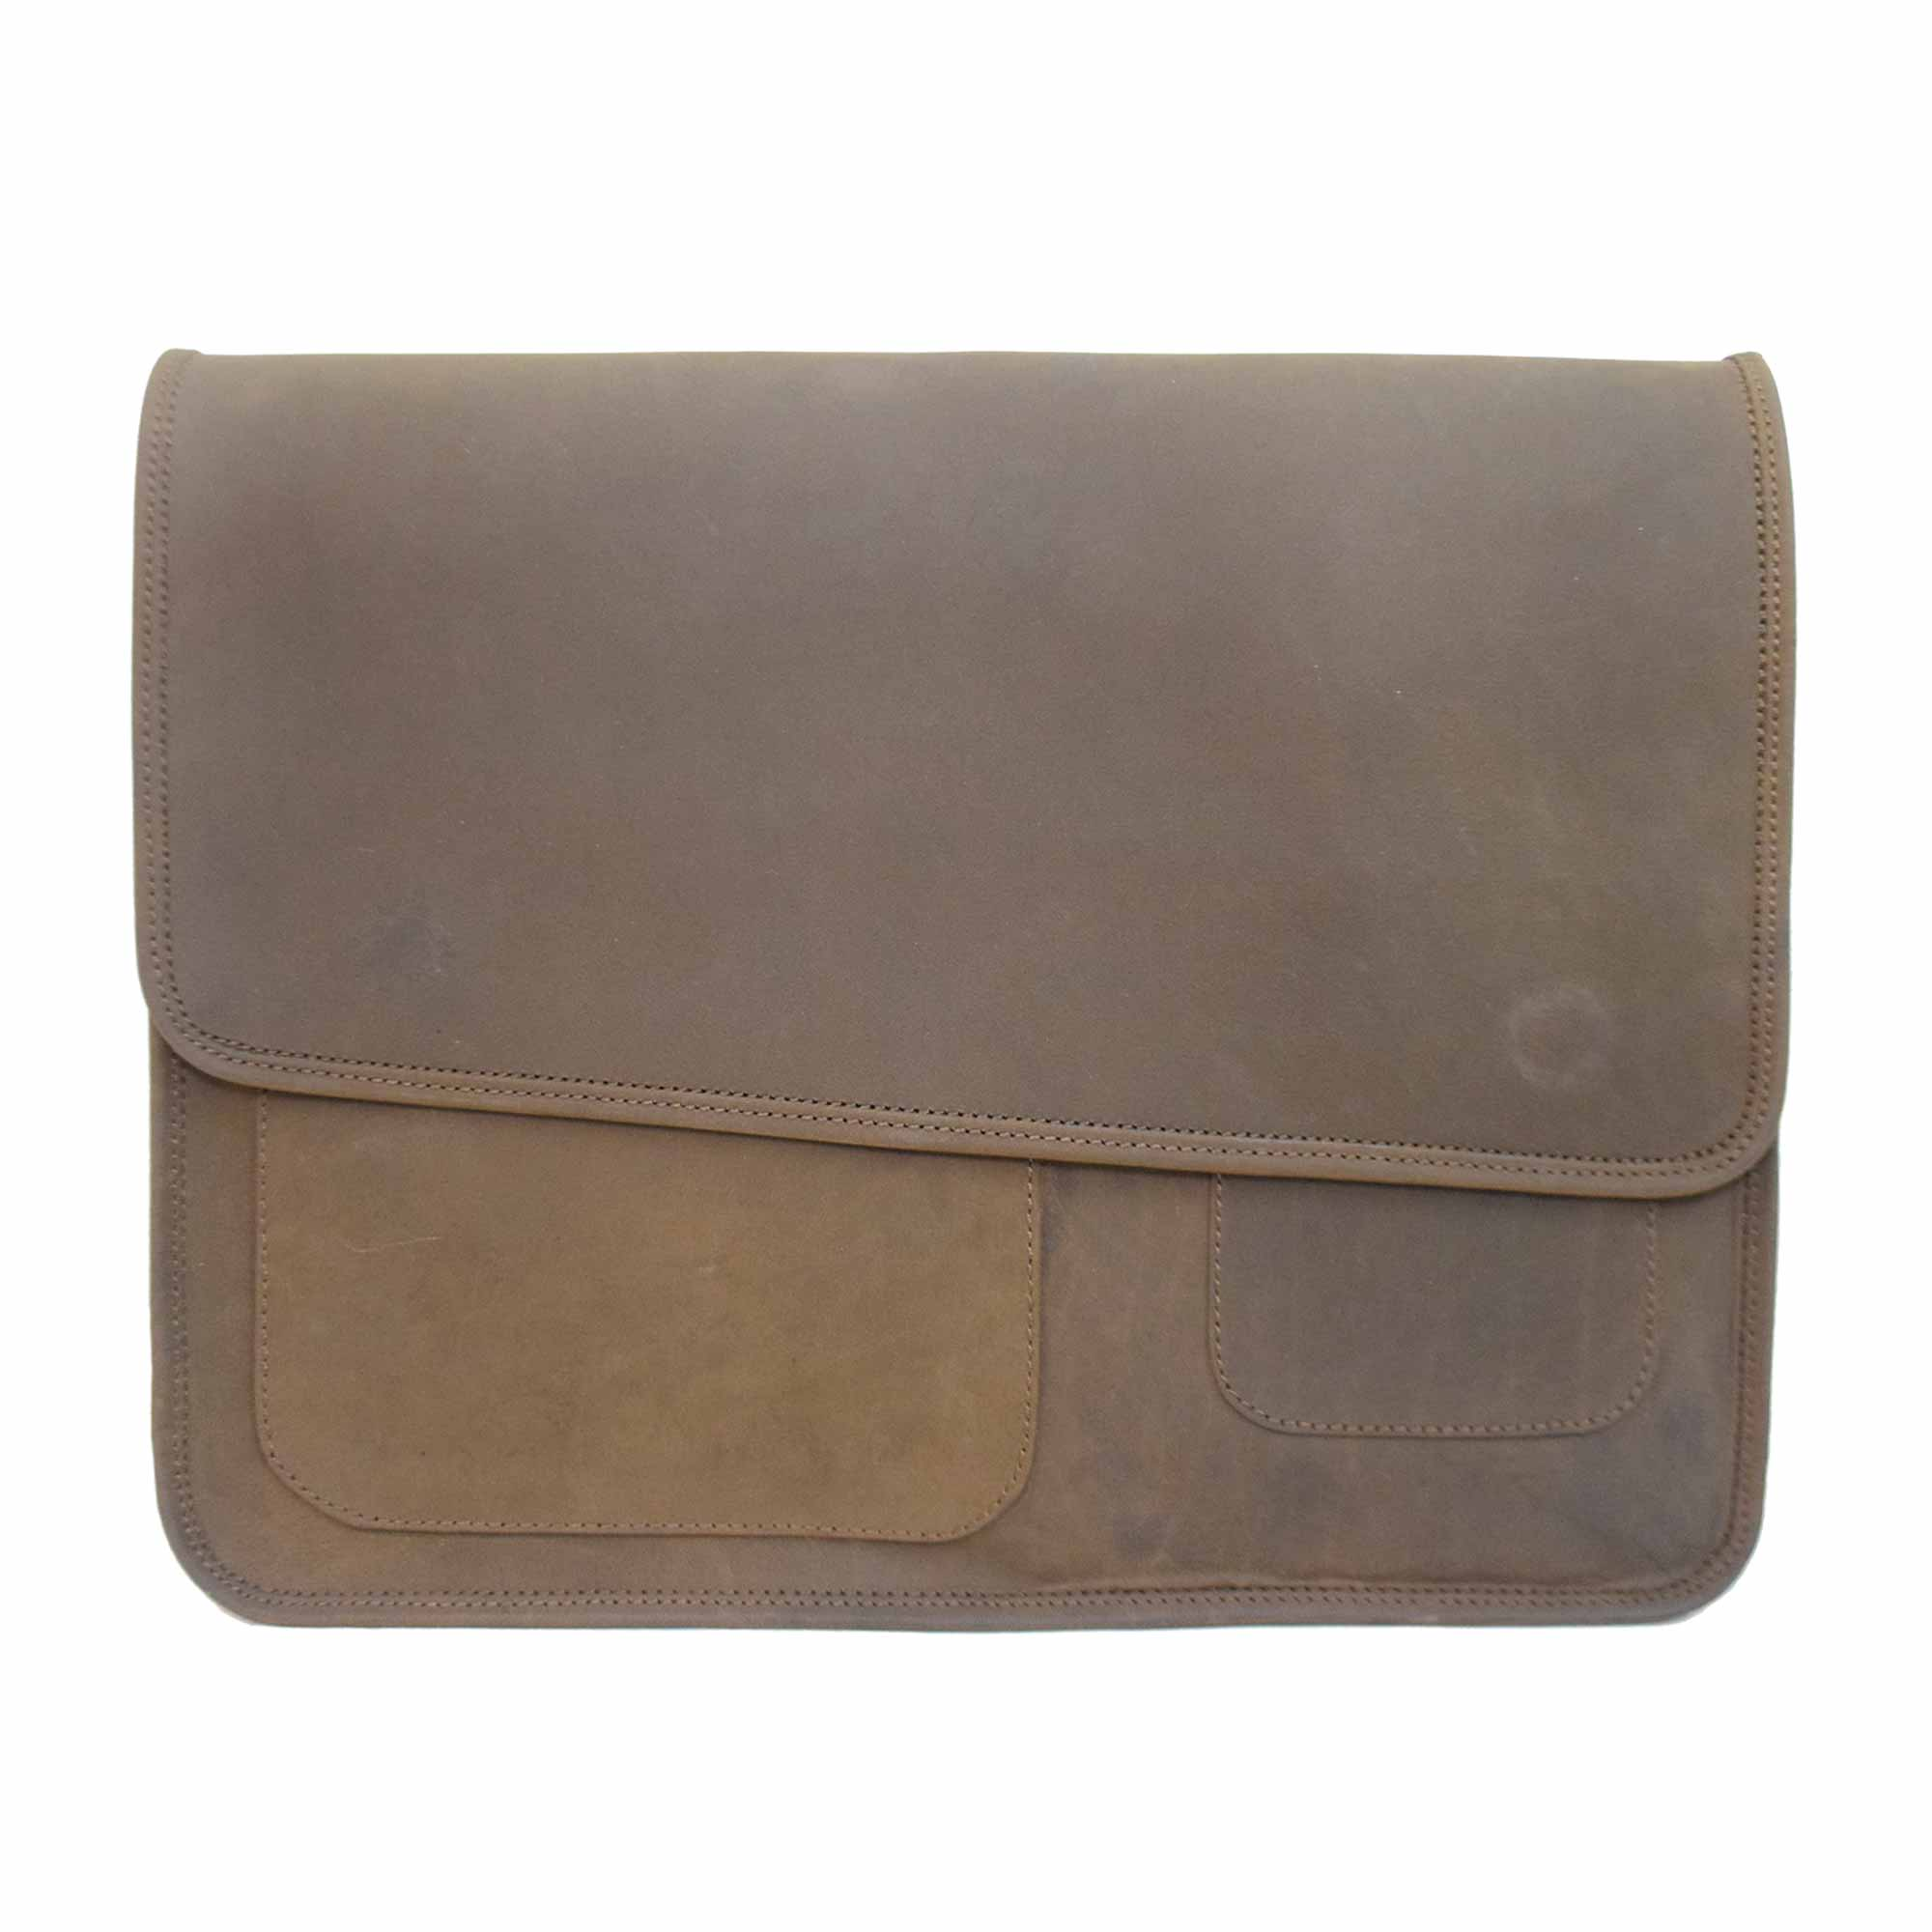 BROWN LAPTOP / MESSENGER BAG FOR 15 INCH LAPTOPS AND OTHER ACCESSORIES WITH UNIQUE SHOULDER STRAP